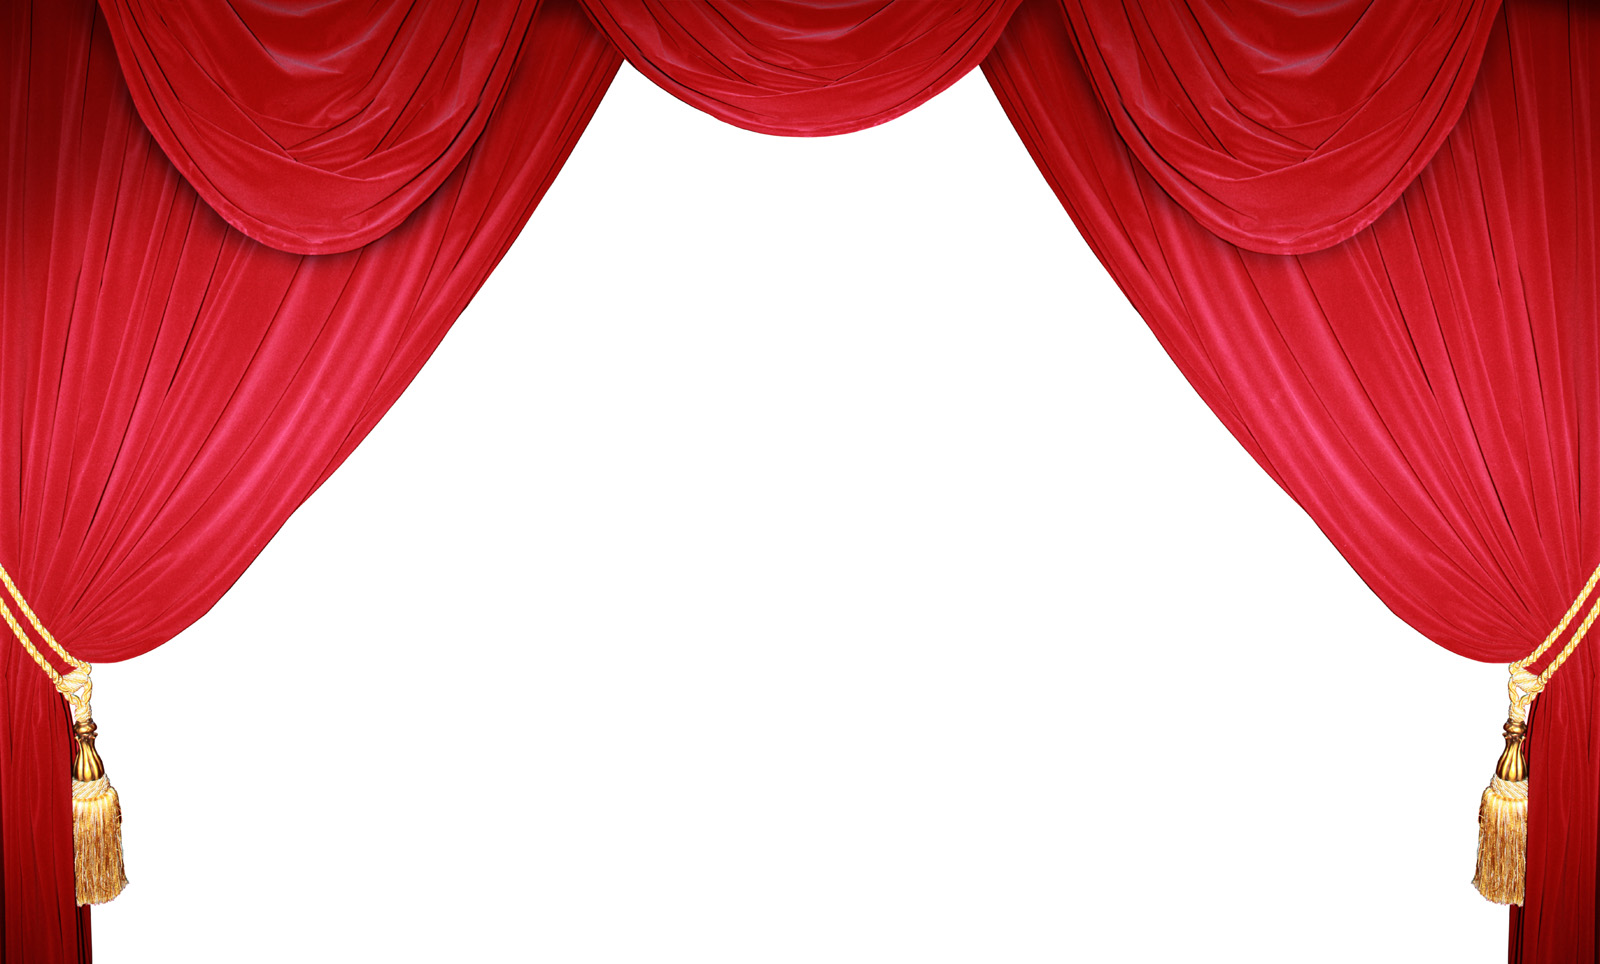 Curtains clipart animated. Free theatre download clip